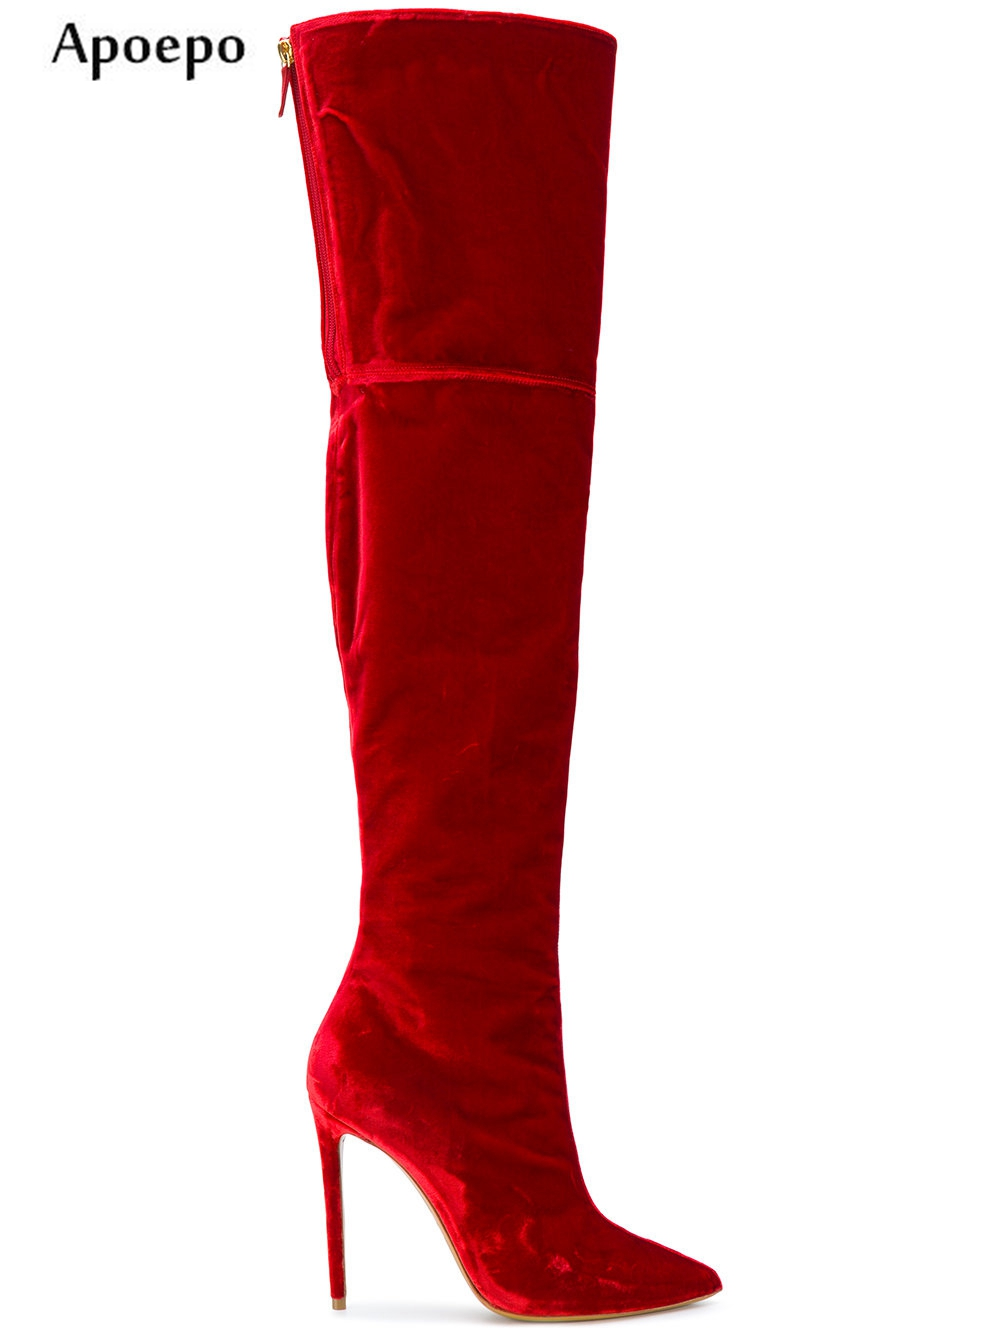 Apoepo 2018 New Fasion Velevet High Heel Boots Sexy Pointed Toe Over the Knee Woman Boots Thin heels thigh high boot riding boot choudory 2017 runway denim blue over the knee boots sexy open toe high heel boots woman thigh high boots thin heels jeans boots